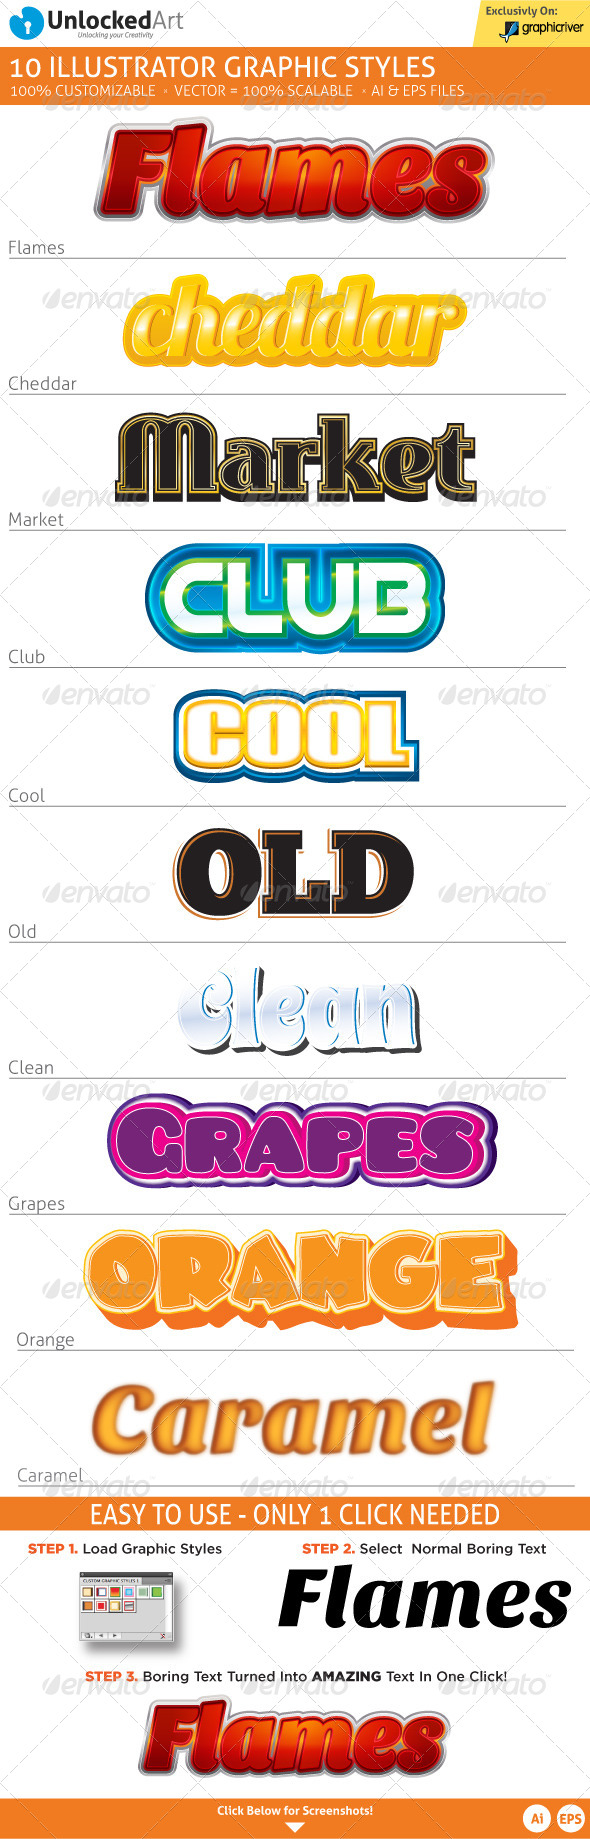 Custom Graphic Styles 2 - Styles Illustrator